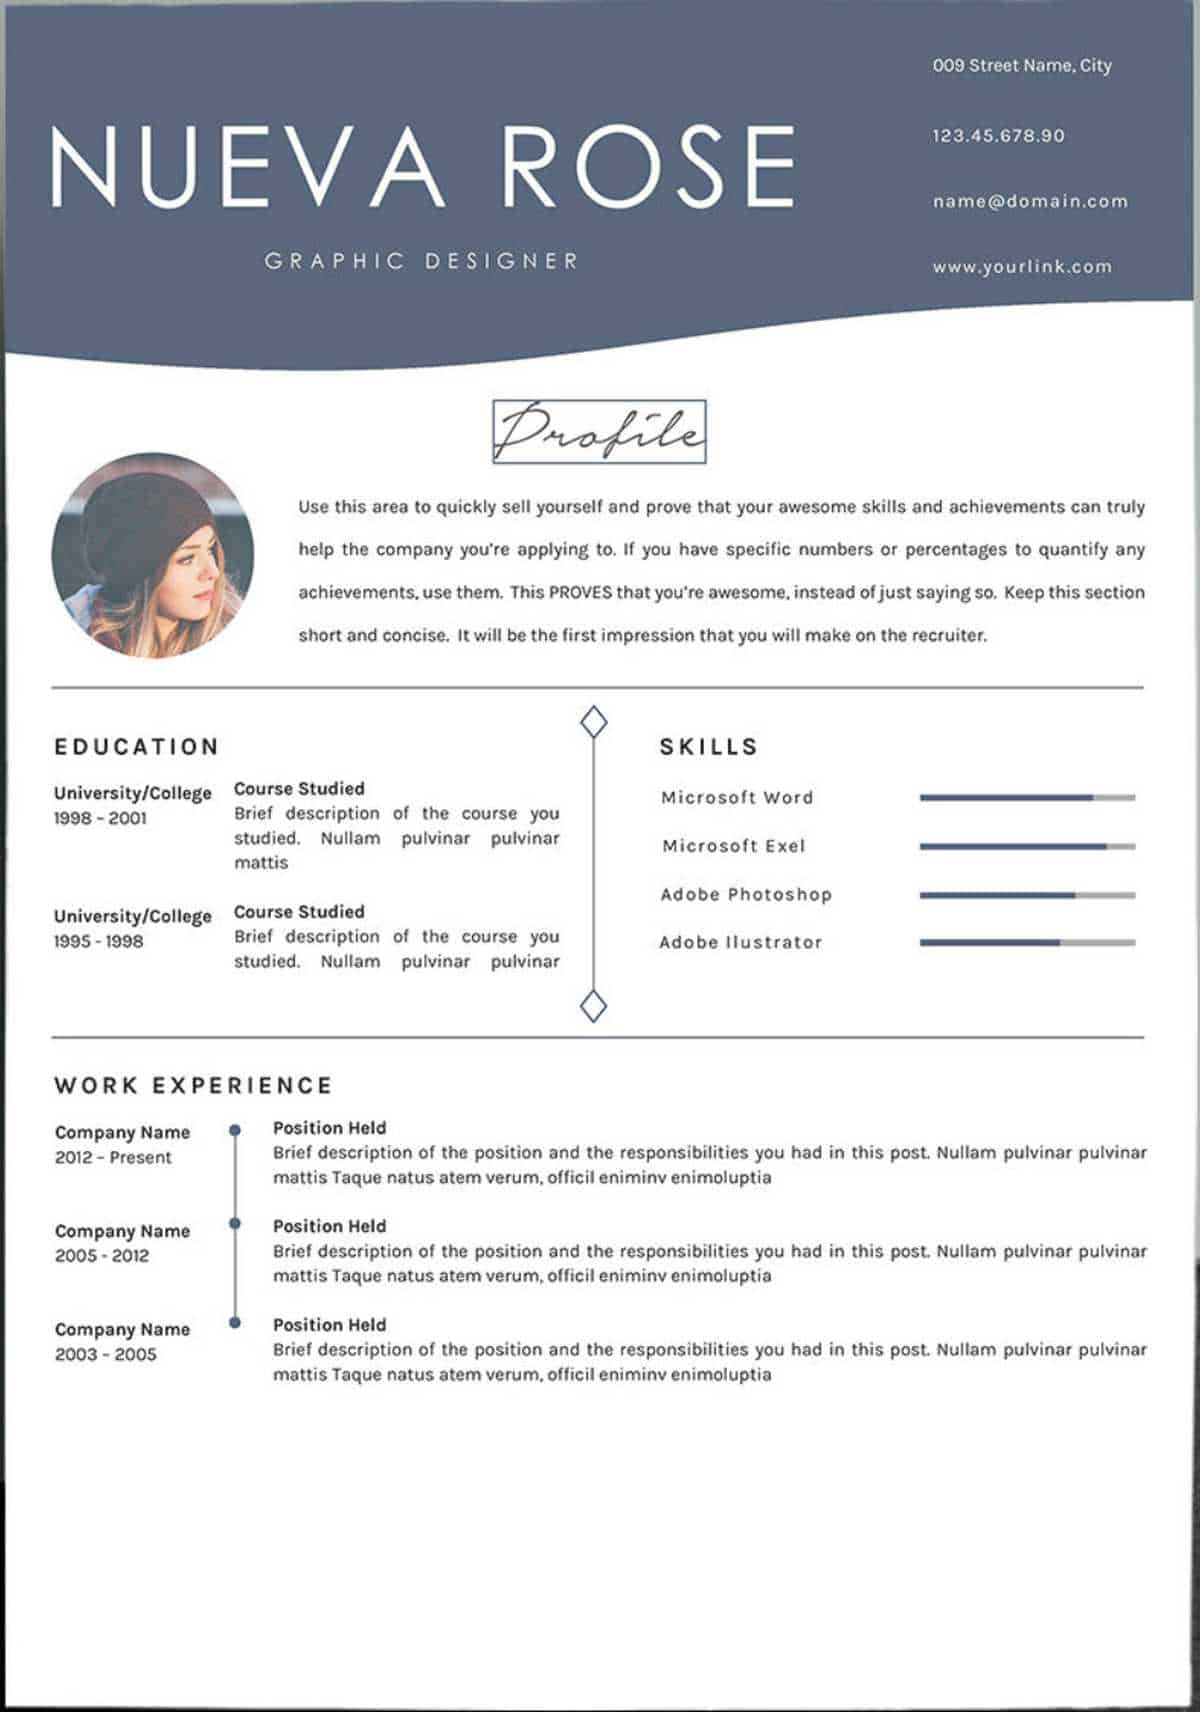 google docs resume templates downloadable pdfs free for nueva rose template sample Resume Free Downloadable Resume Templates For Google Docs